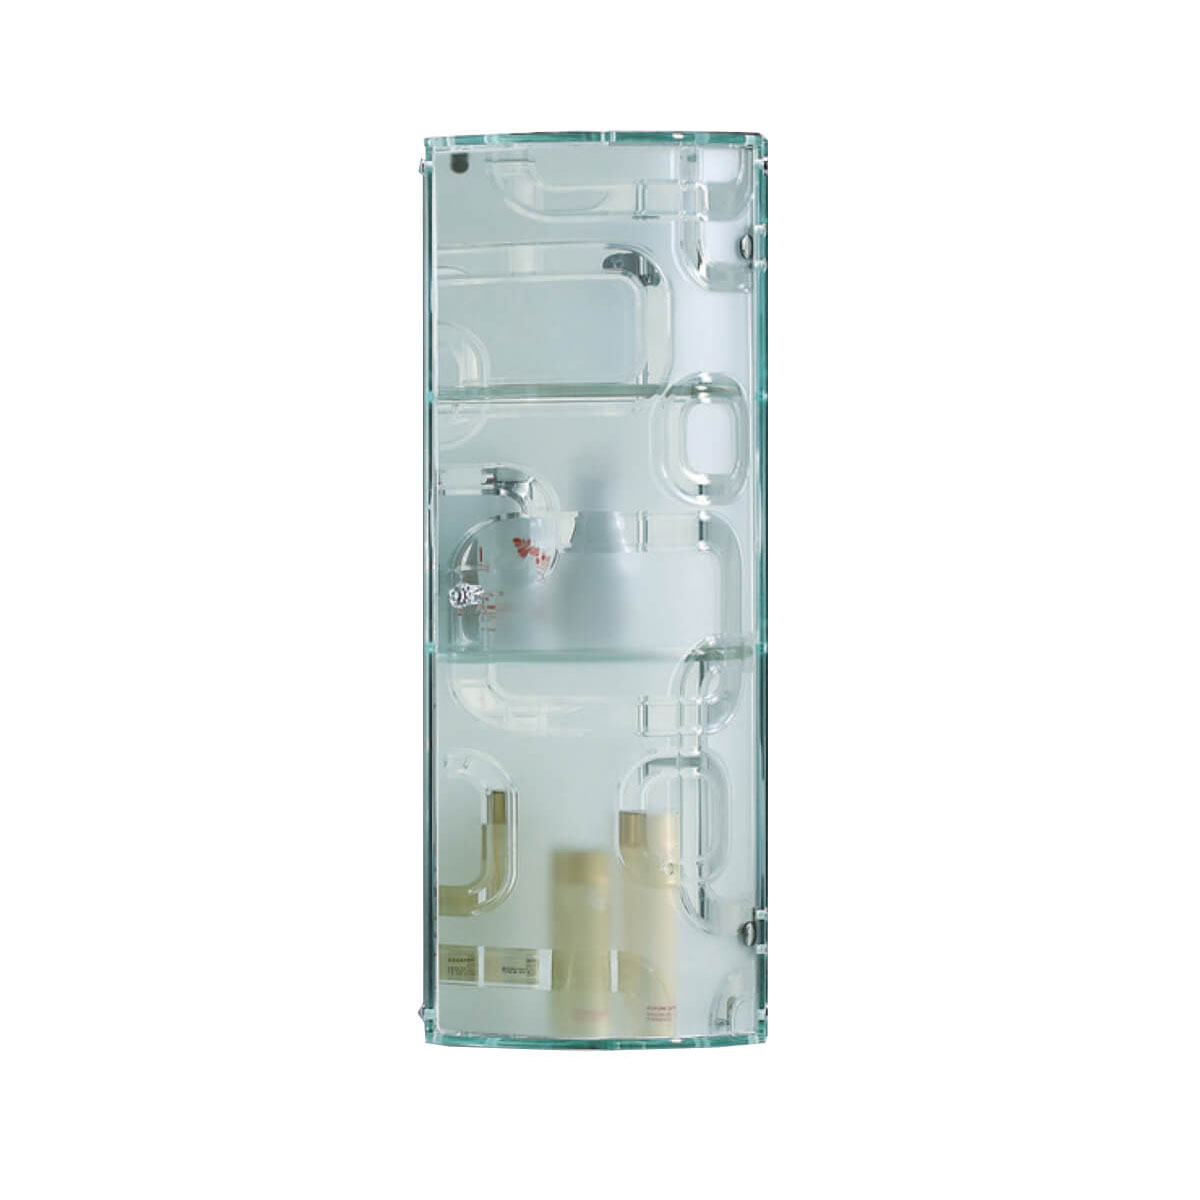 Fab glass and mirror stylish glass wall mounted bathroom - Wall mounted bathroom storage units ...